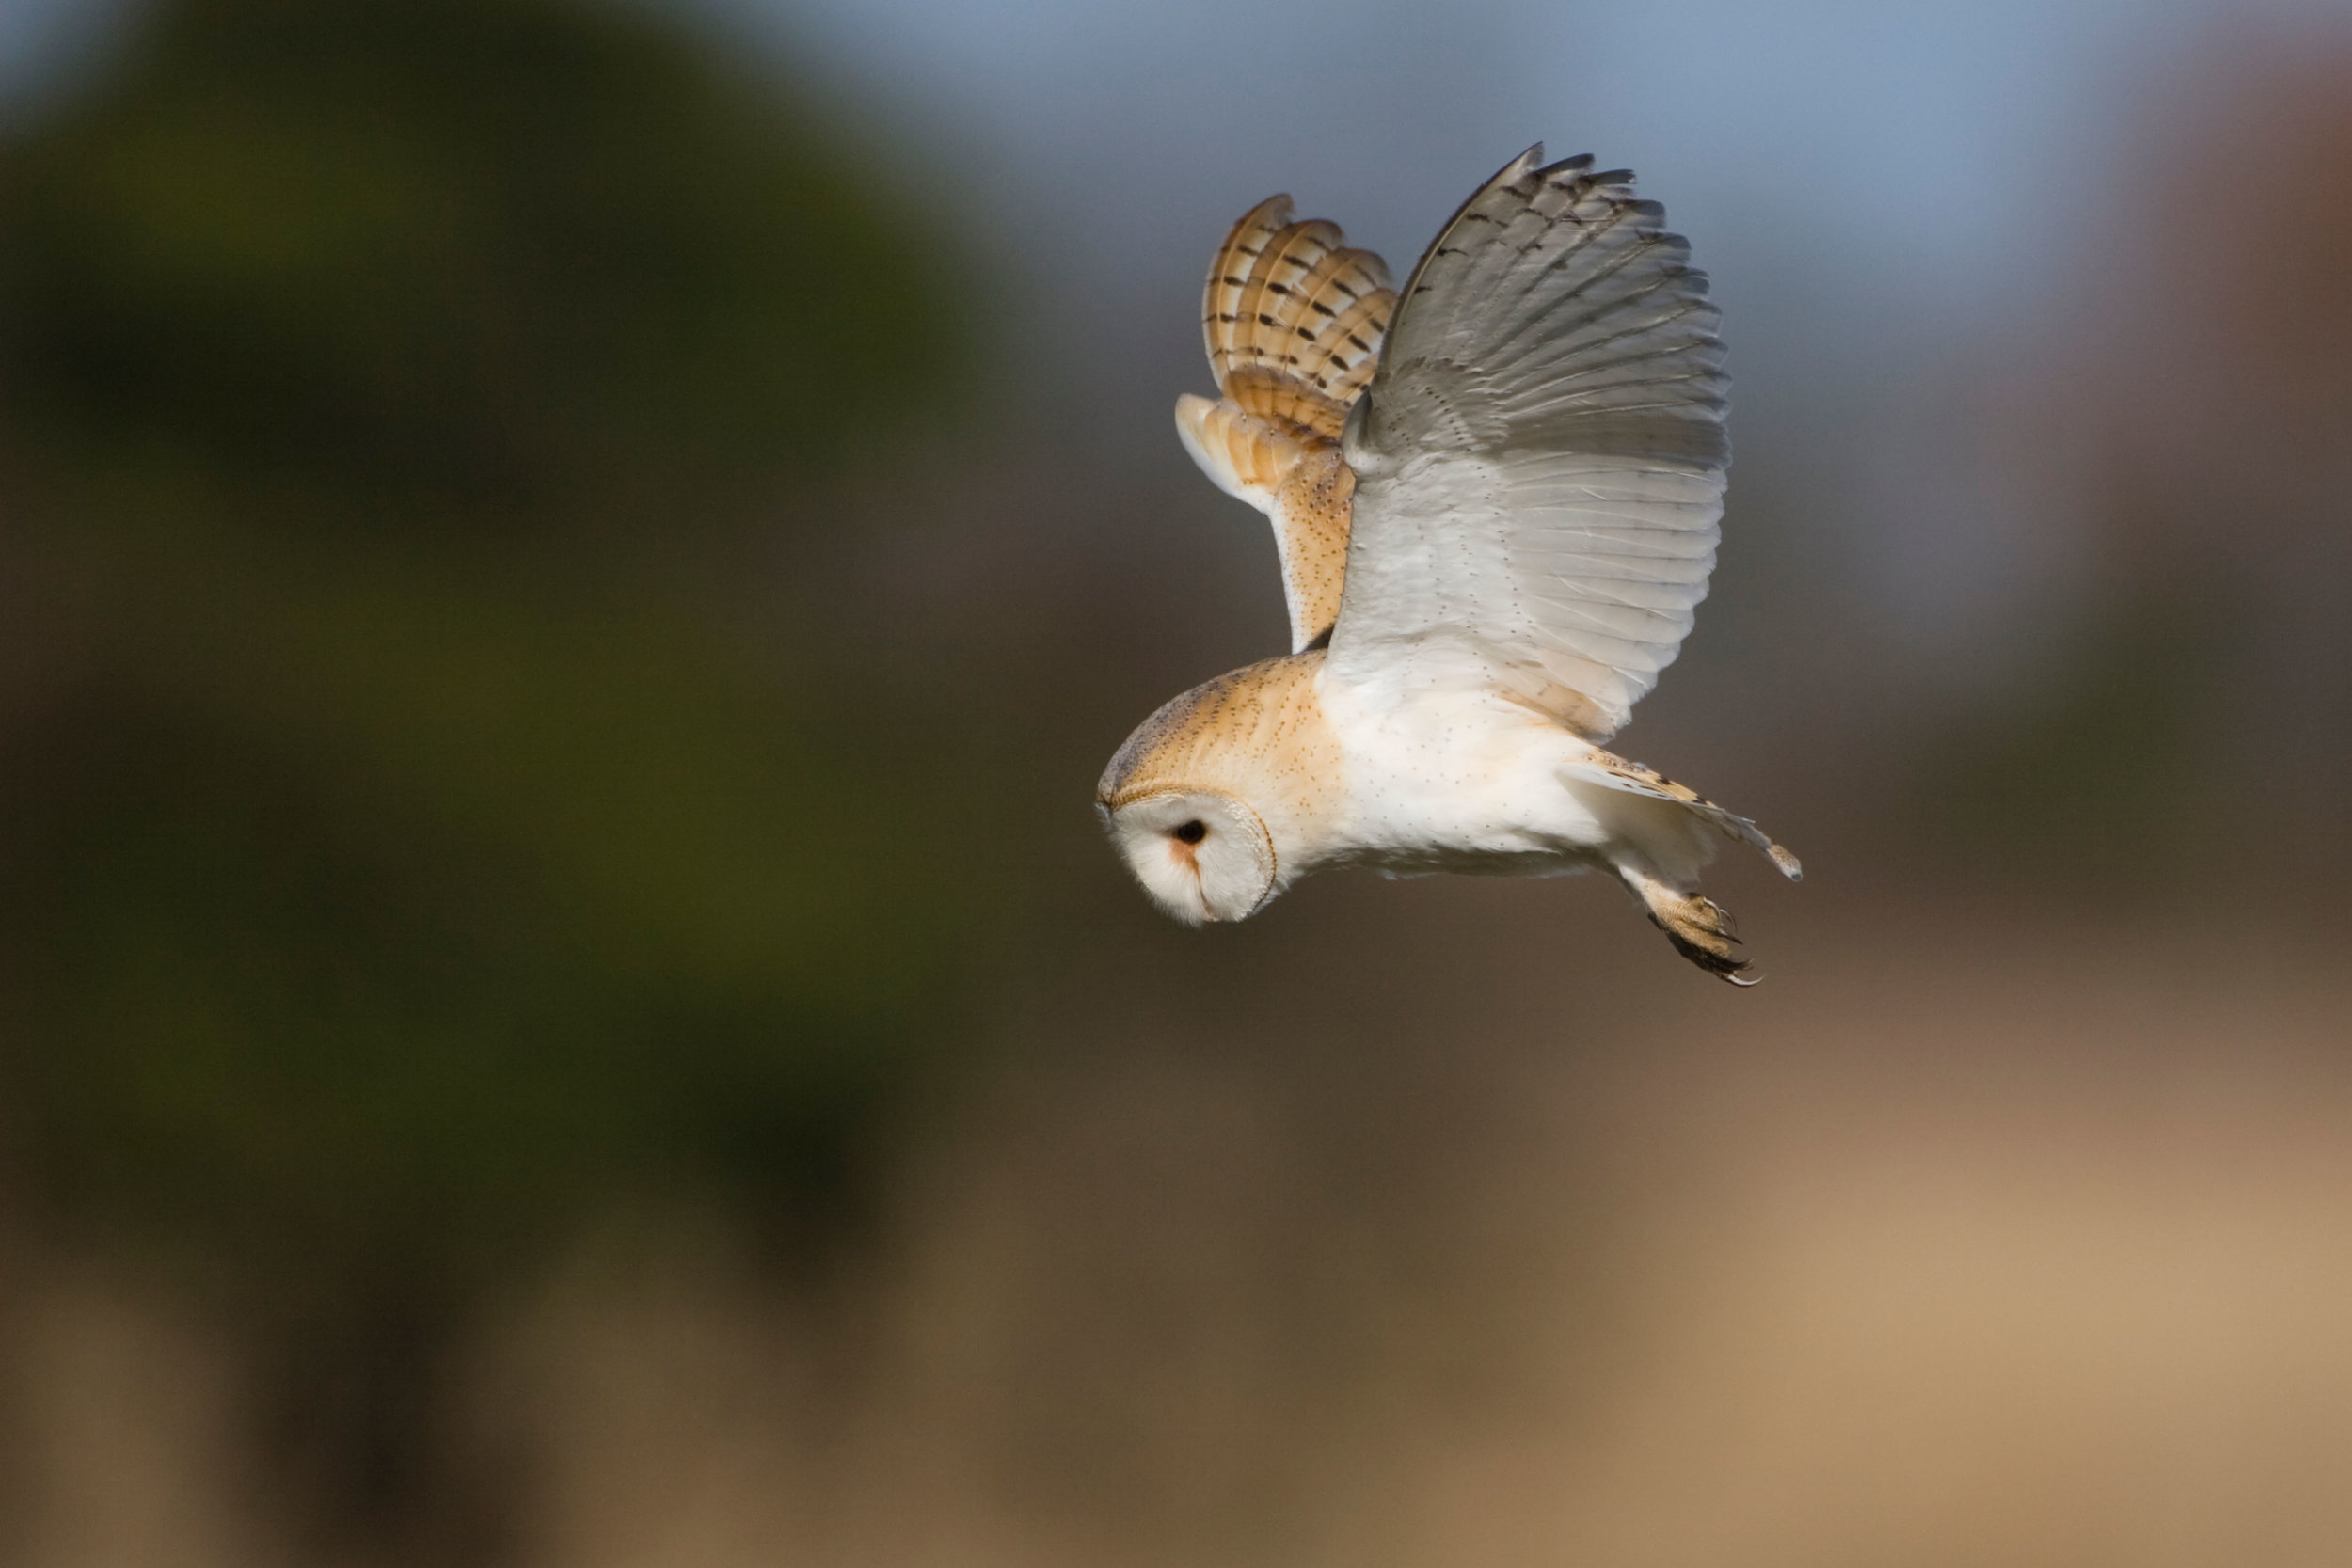 Barn Owl hunting by day